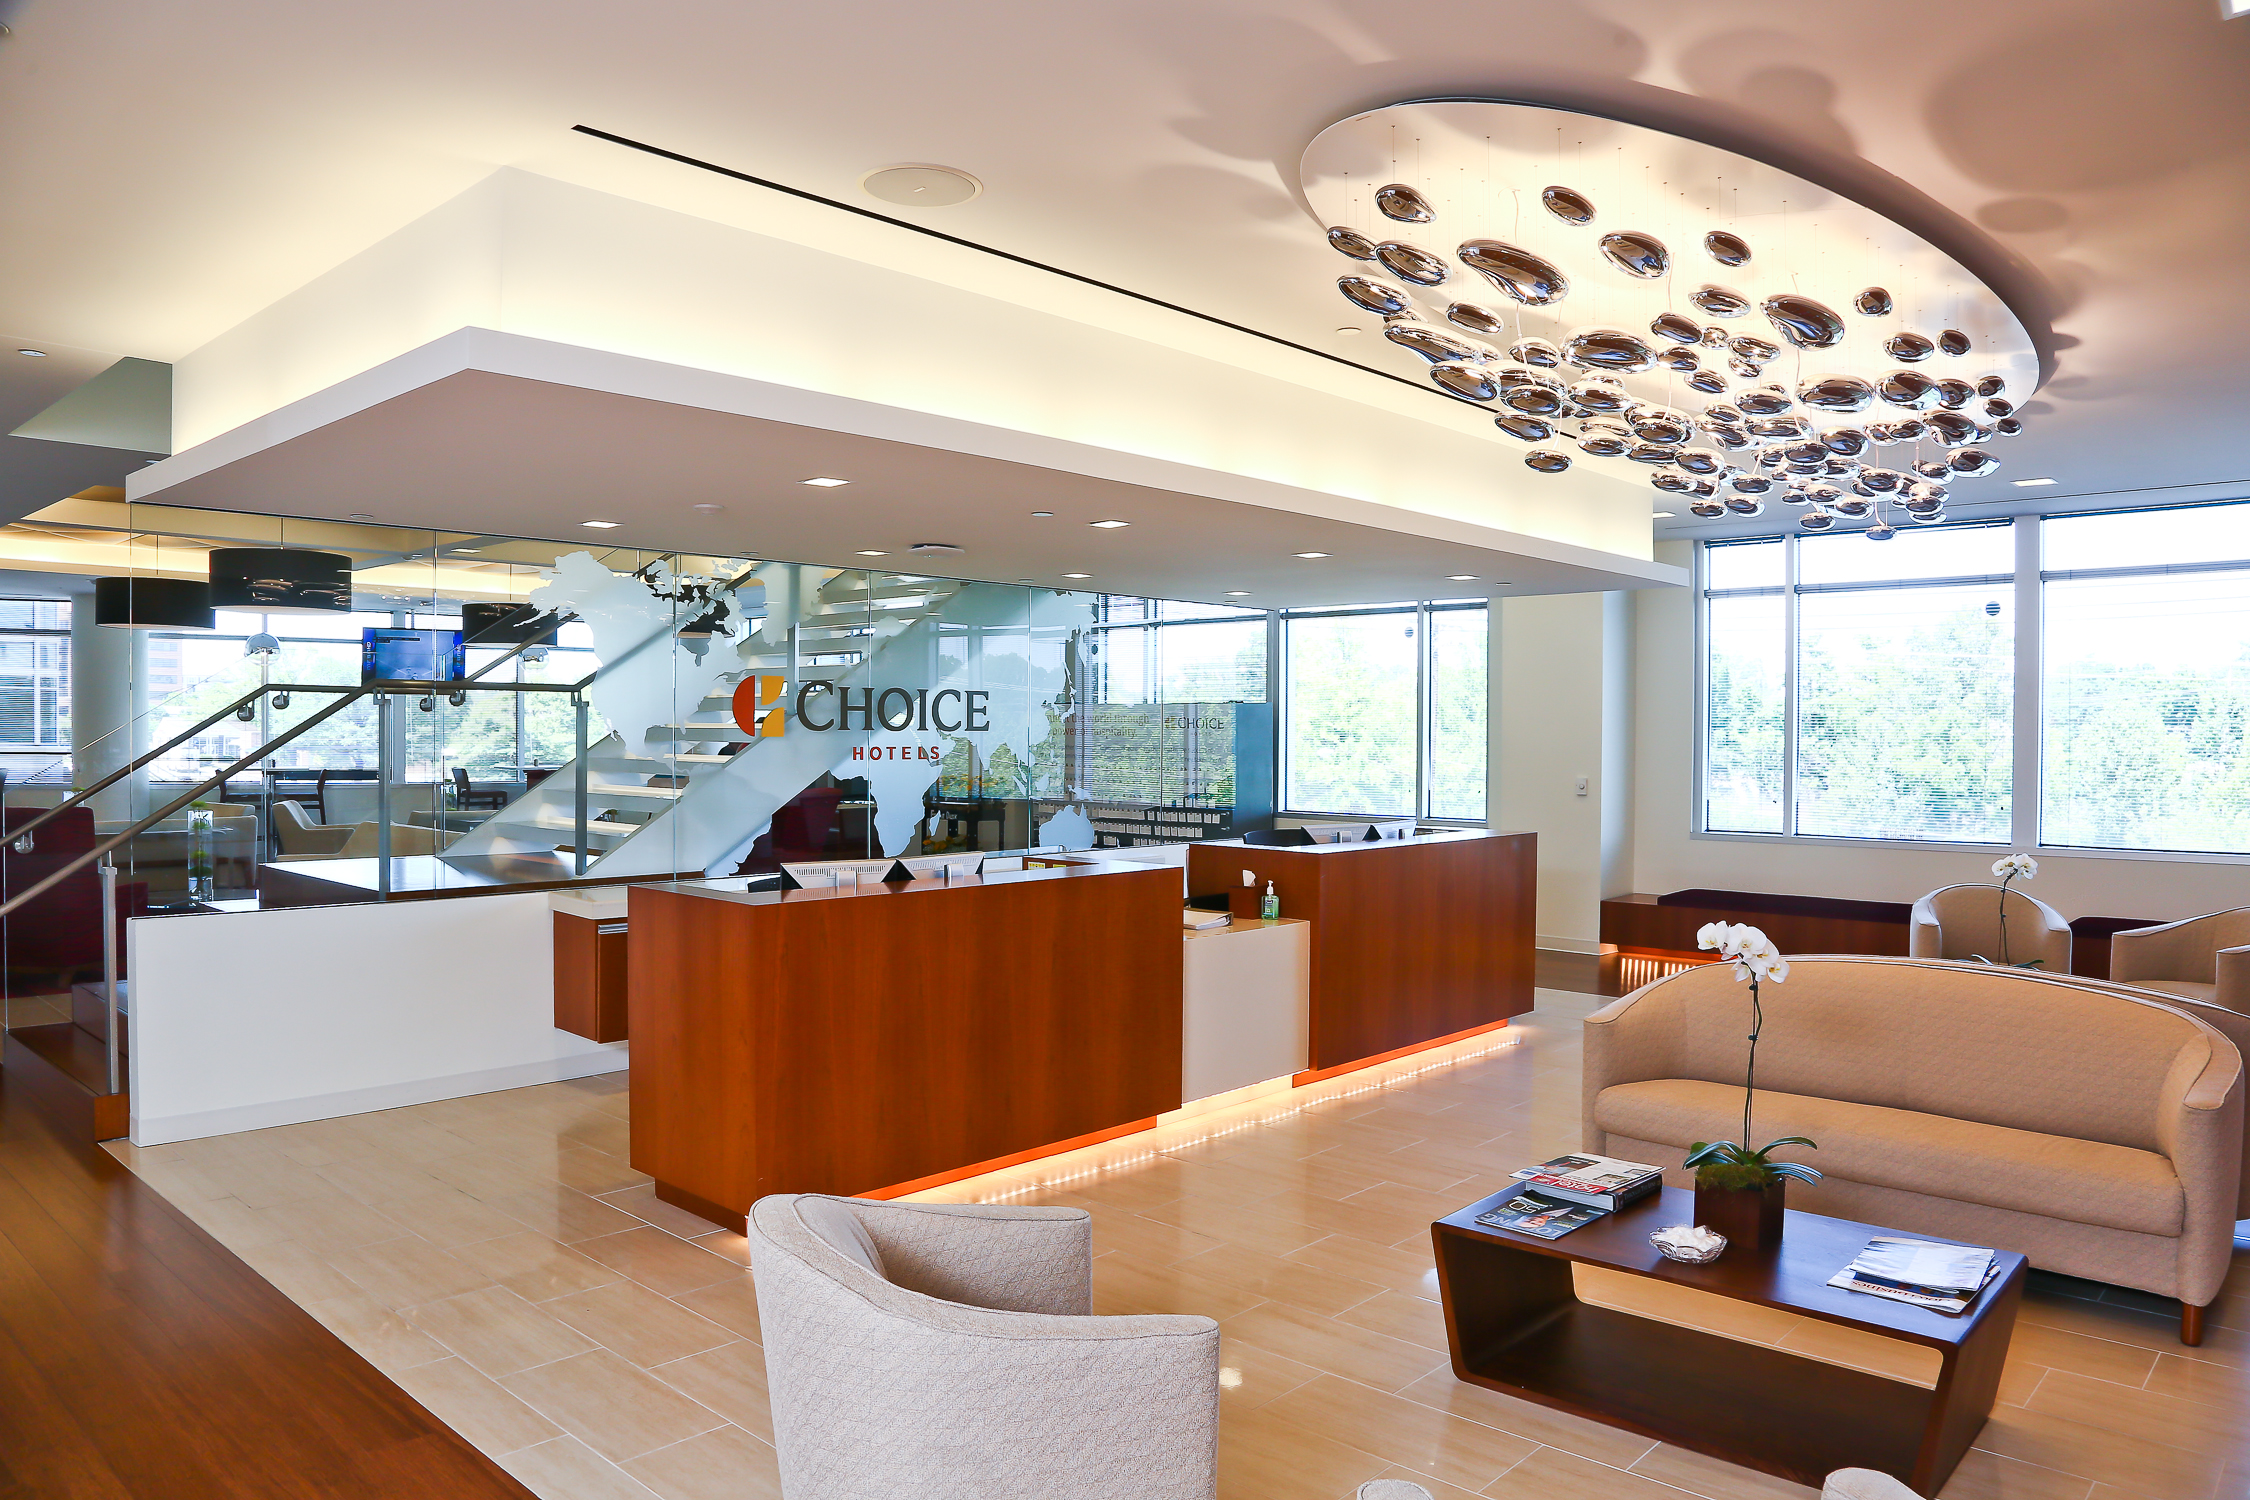 Choice Hotels increases focus on corporate travel